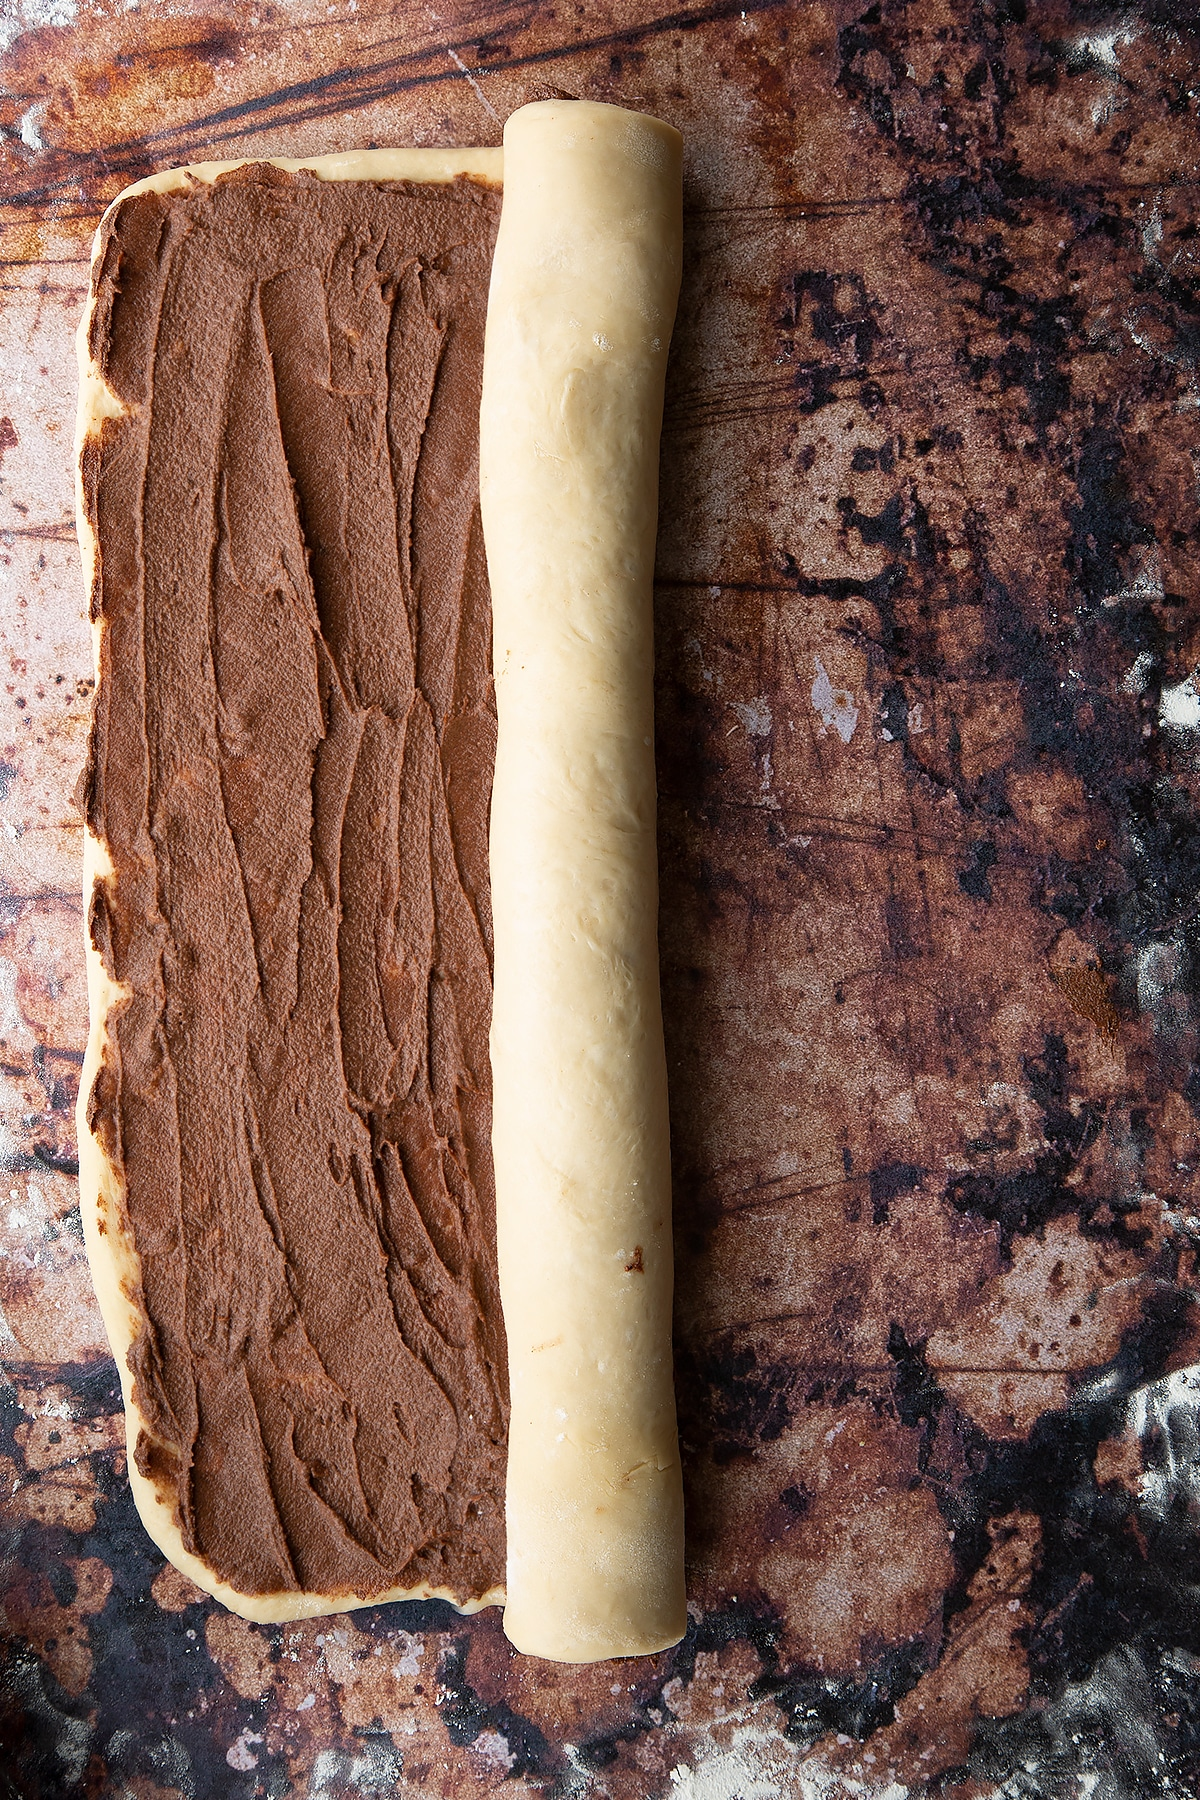 Overhead shot of dough layered with chocolate spread and rolled on one side.